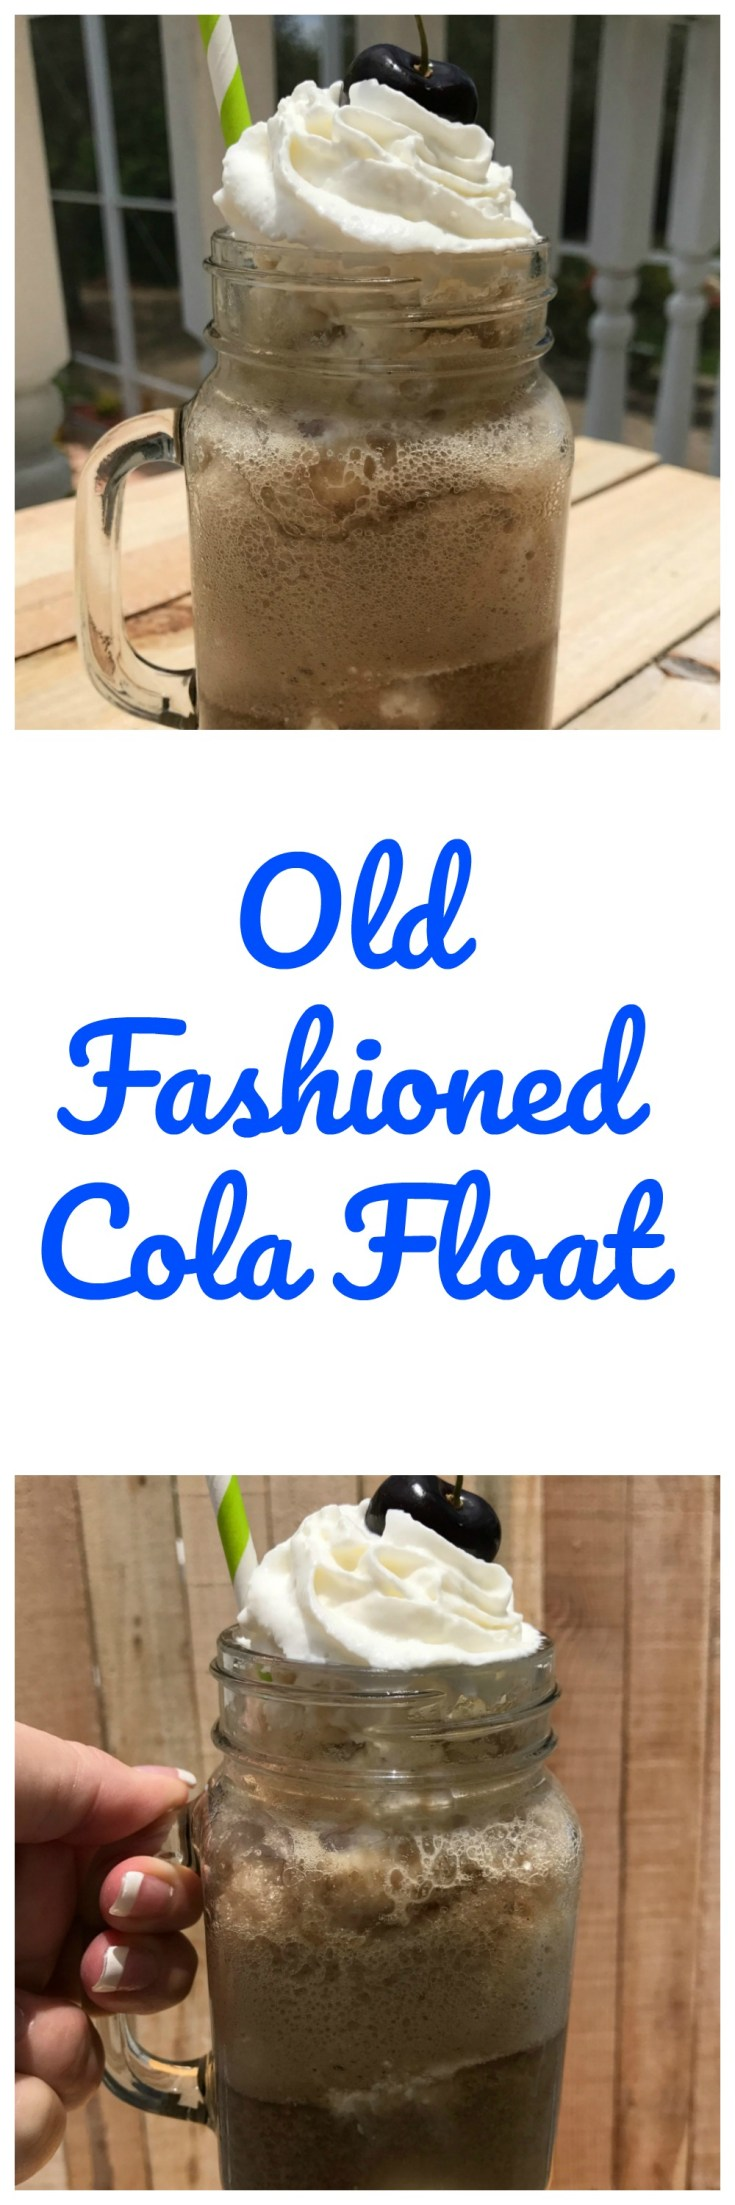 A old fashioned cola float will take you back to your childhood.